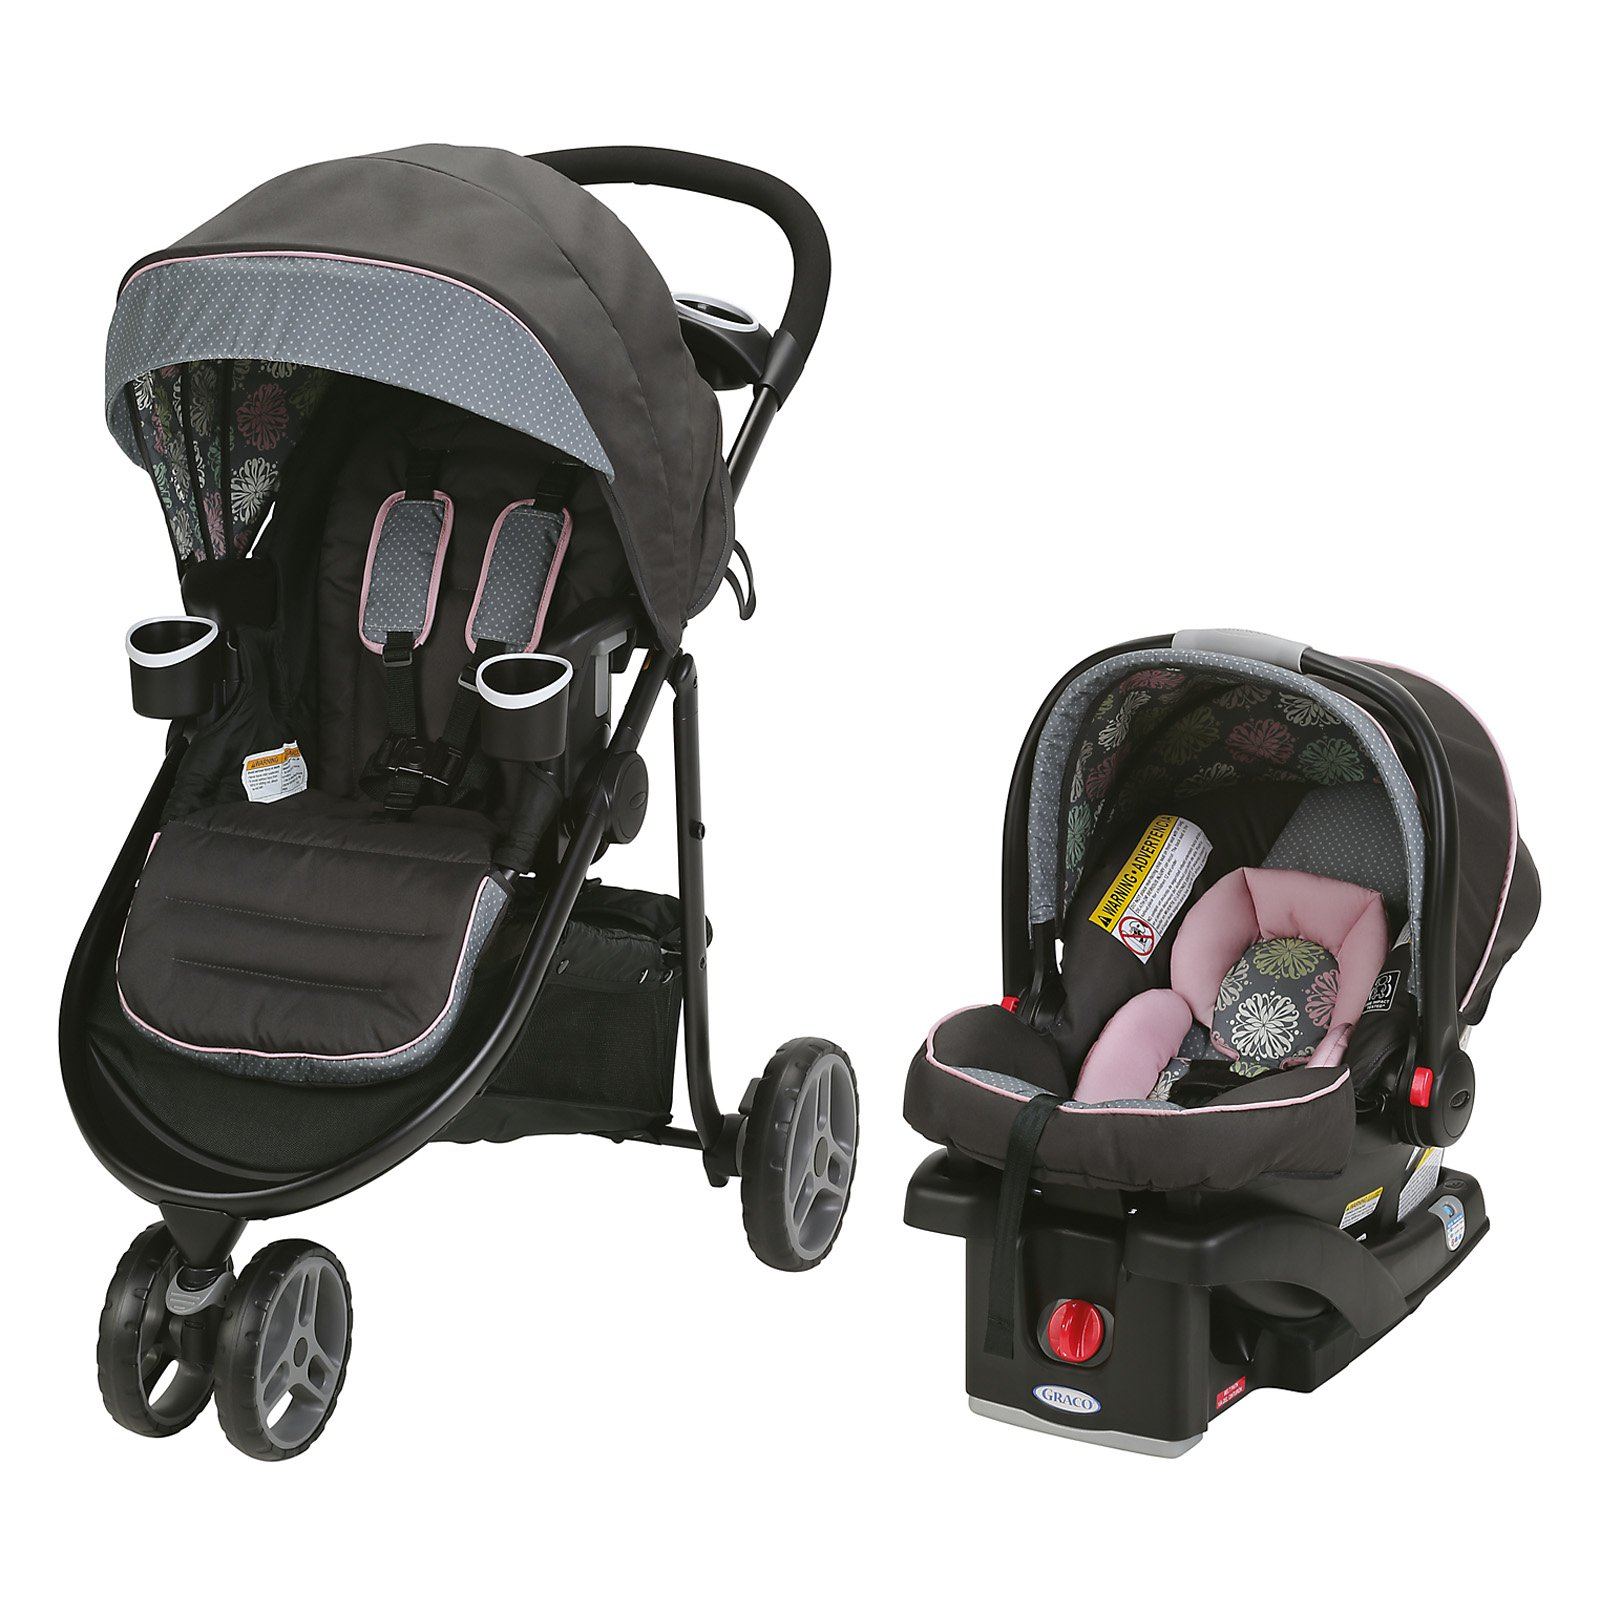 4049f3aff Graco Modes 3 Lite Travel System - Addison   Products in 2019   Baby ...